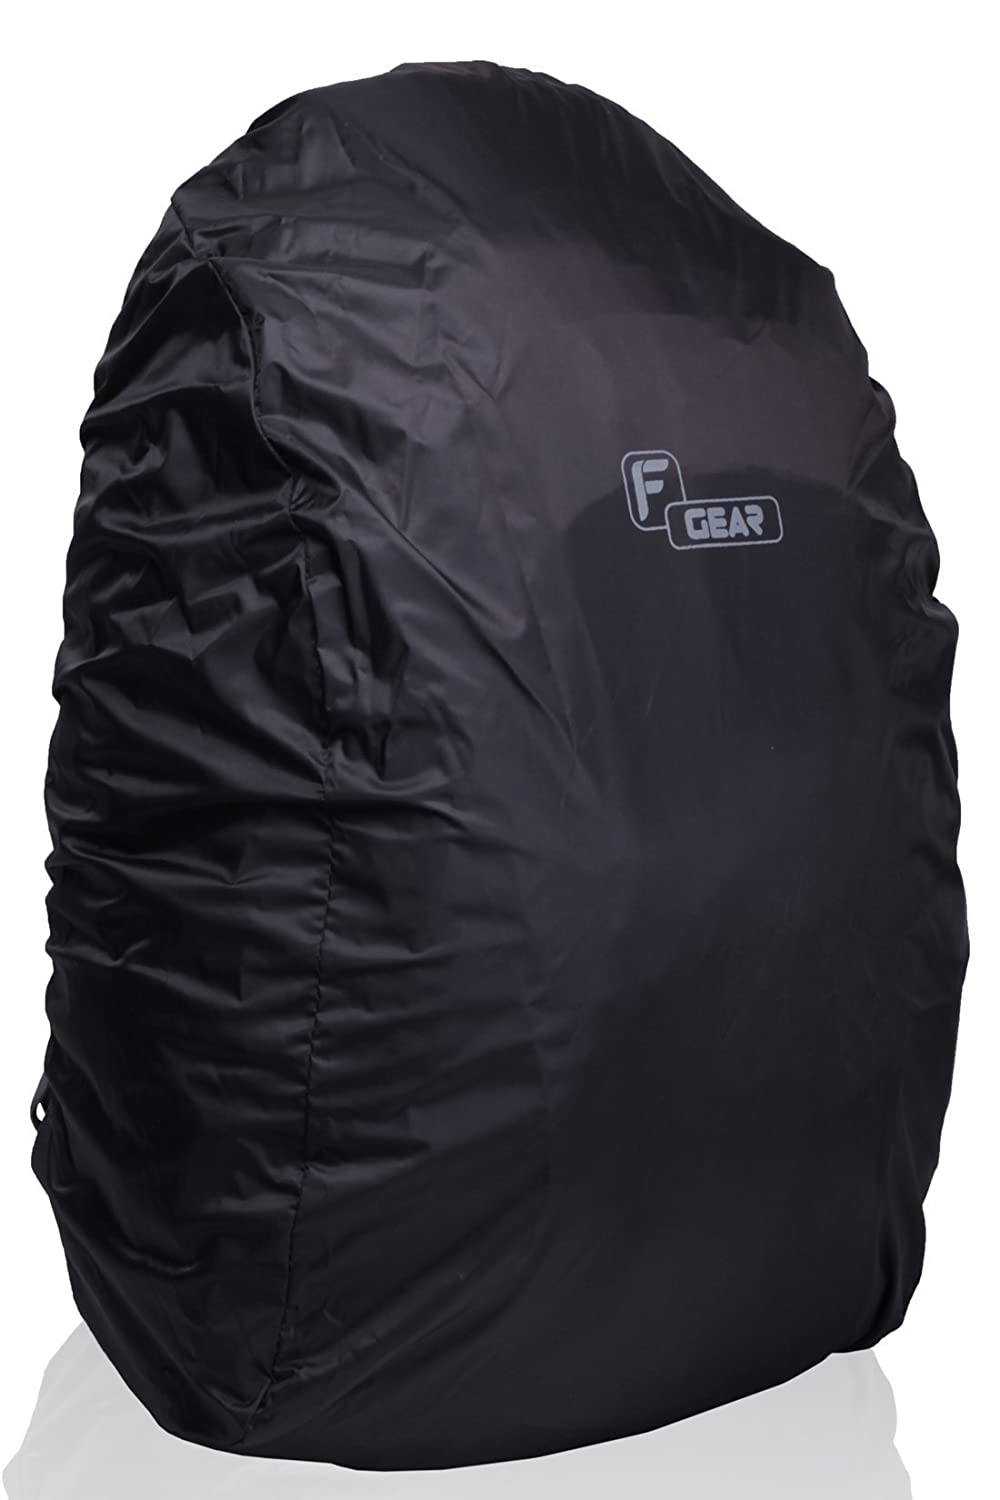 F Gear Repel 30 ltrs Rain and Dust Cover for Laptop Bags and Backpacks